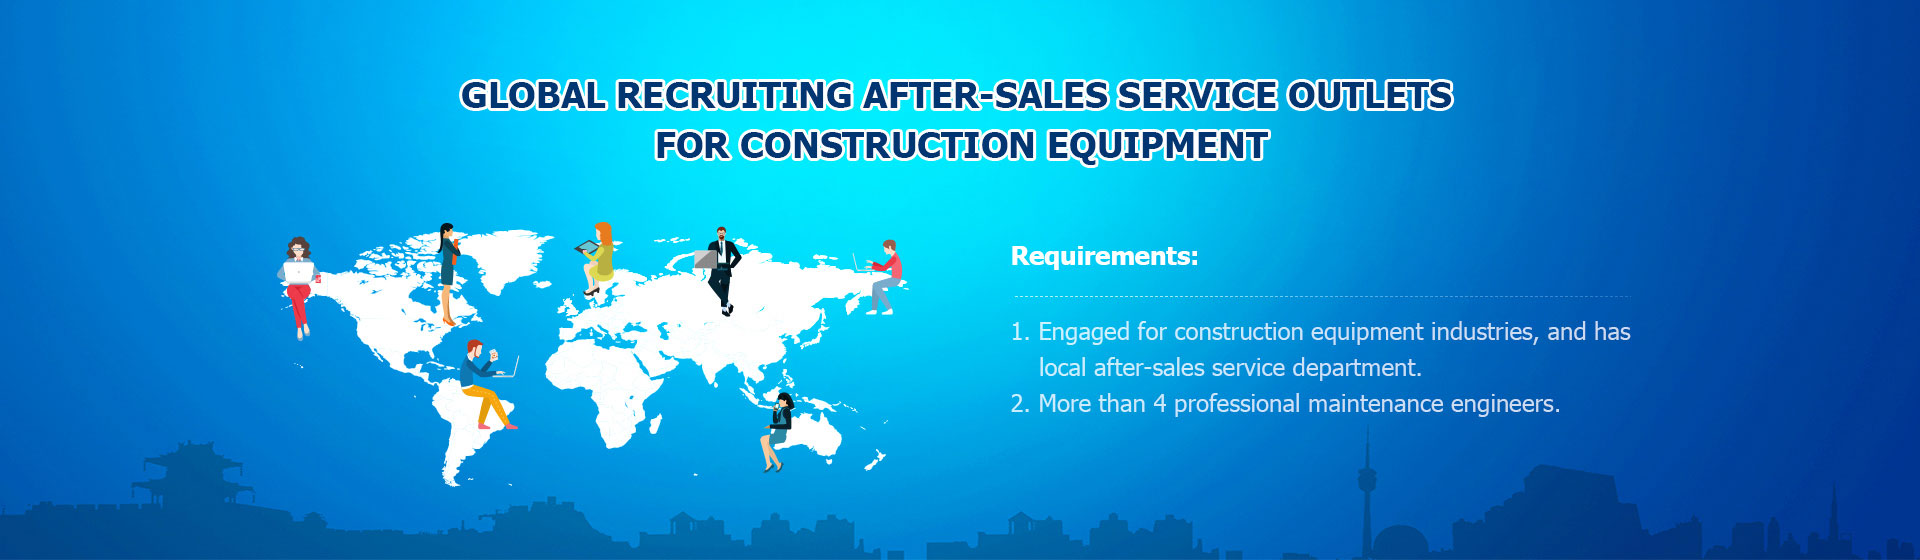 After-Sales Service Outlets recruitment